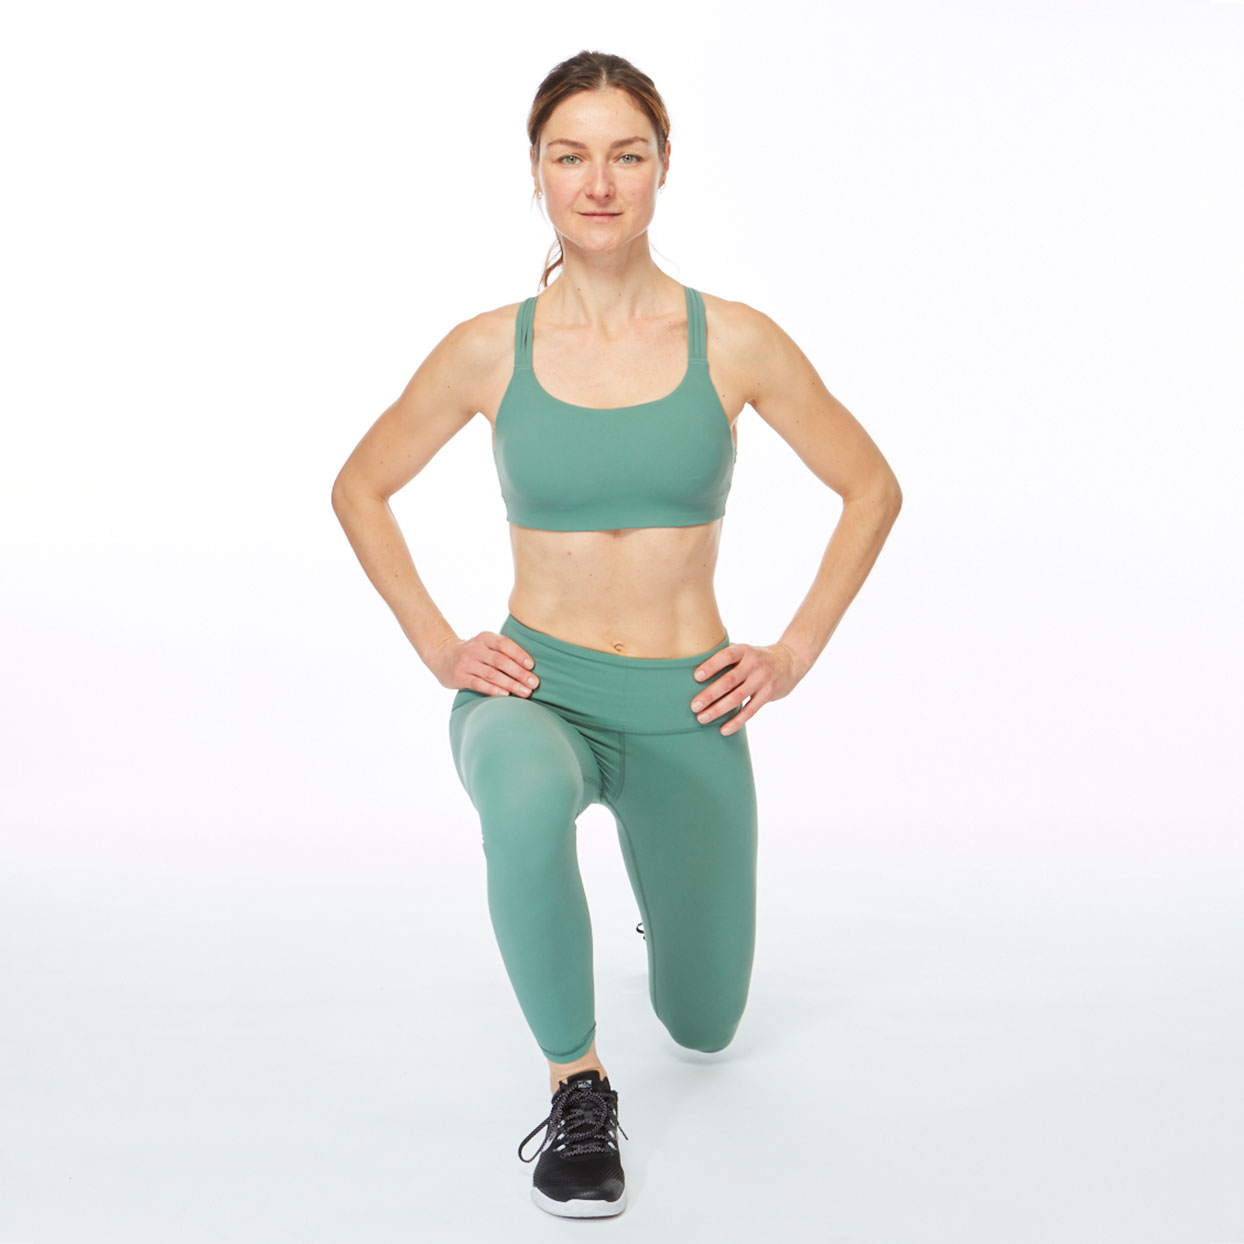 Diet With Exercise For Best Weight Loss Results